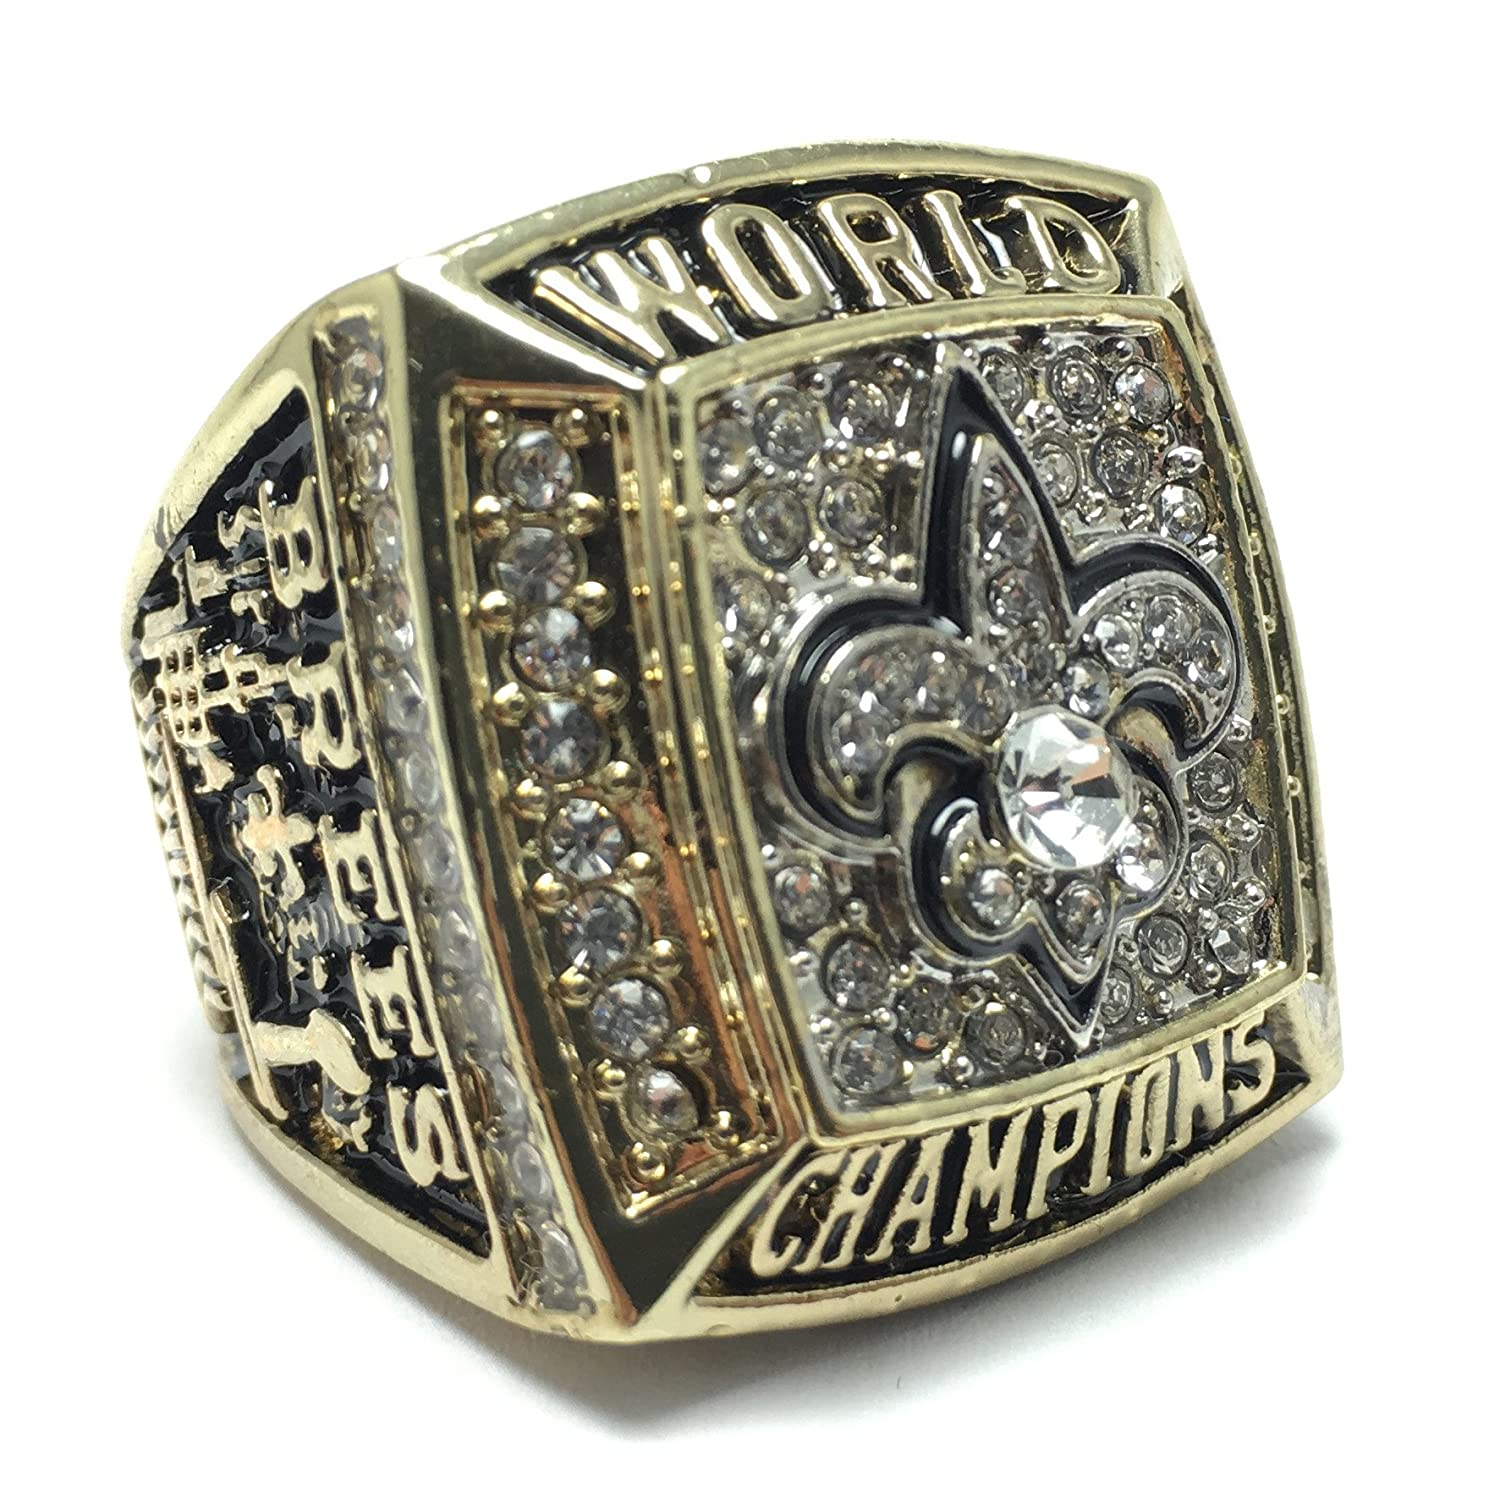 darrell chicago xli with bowl box lot saints lg super rings player detail ring nfc bears champions mcclover presentation